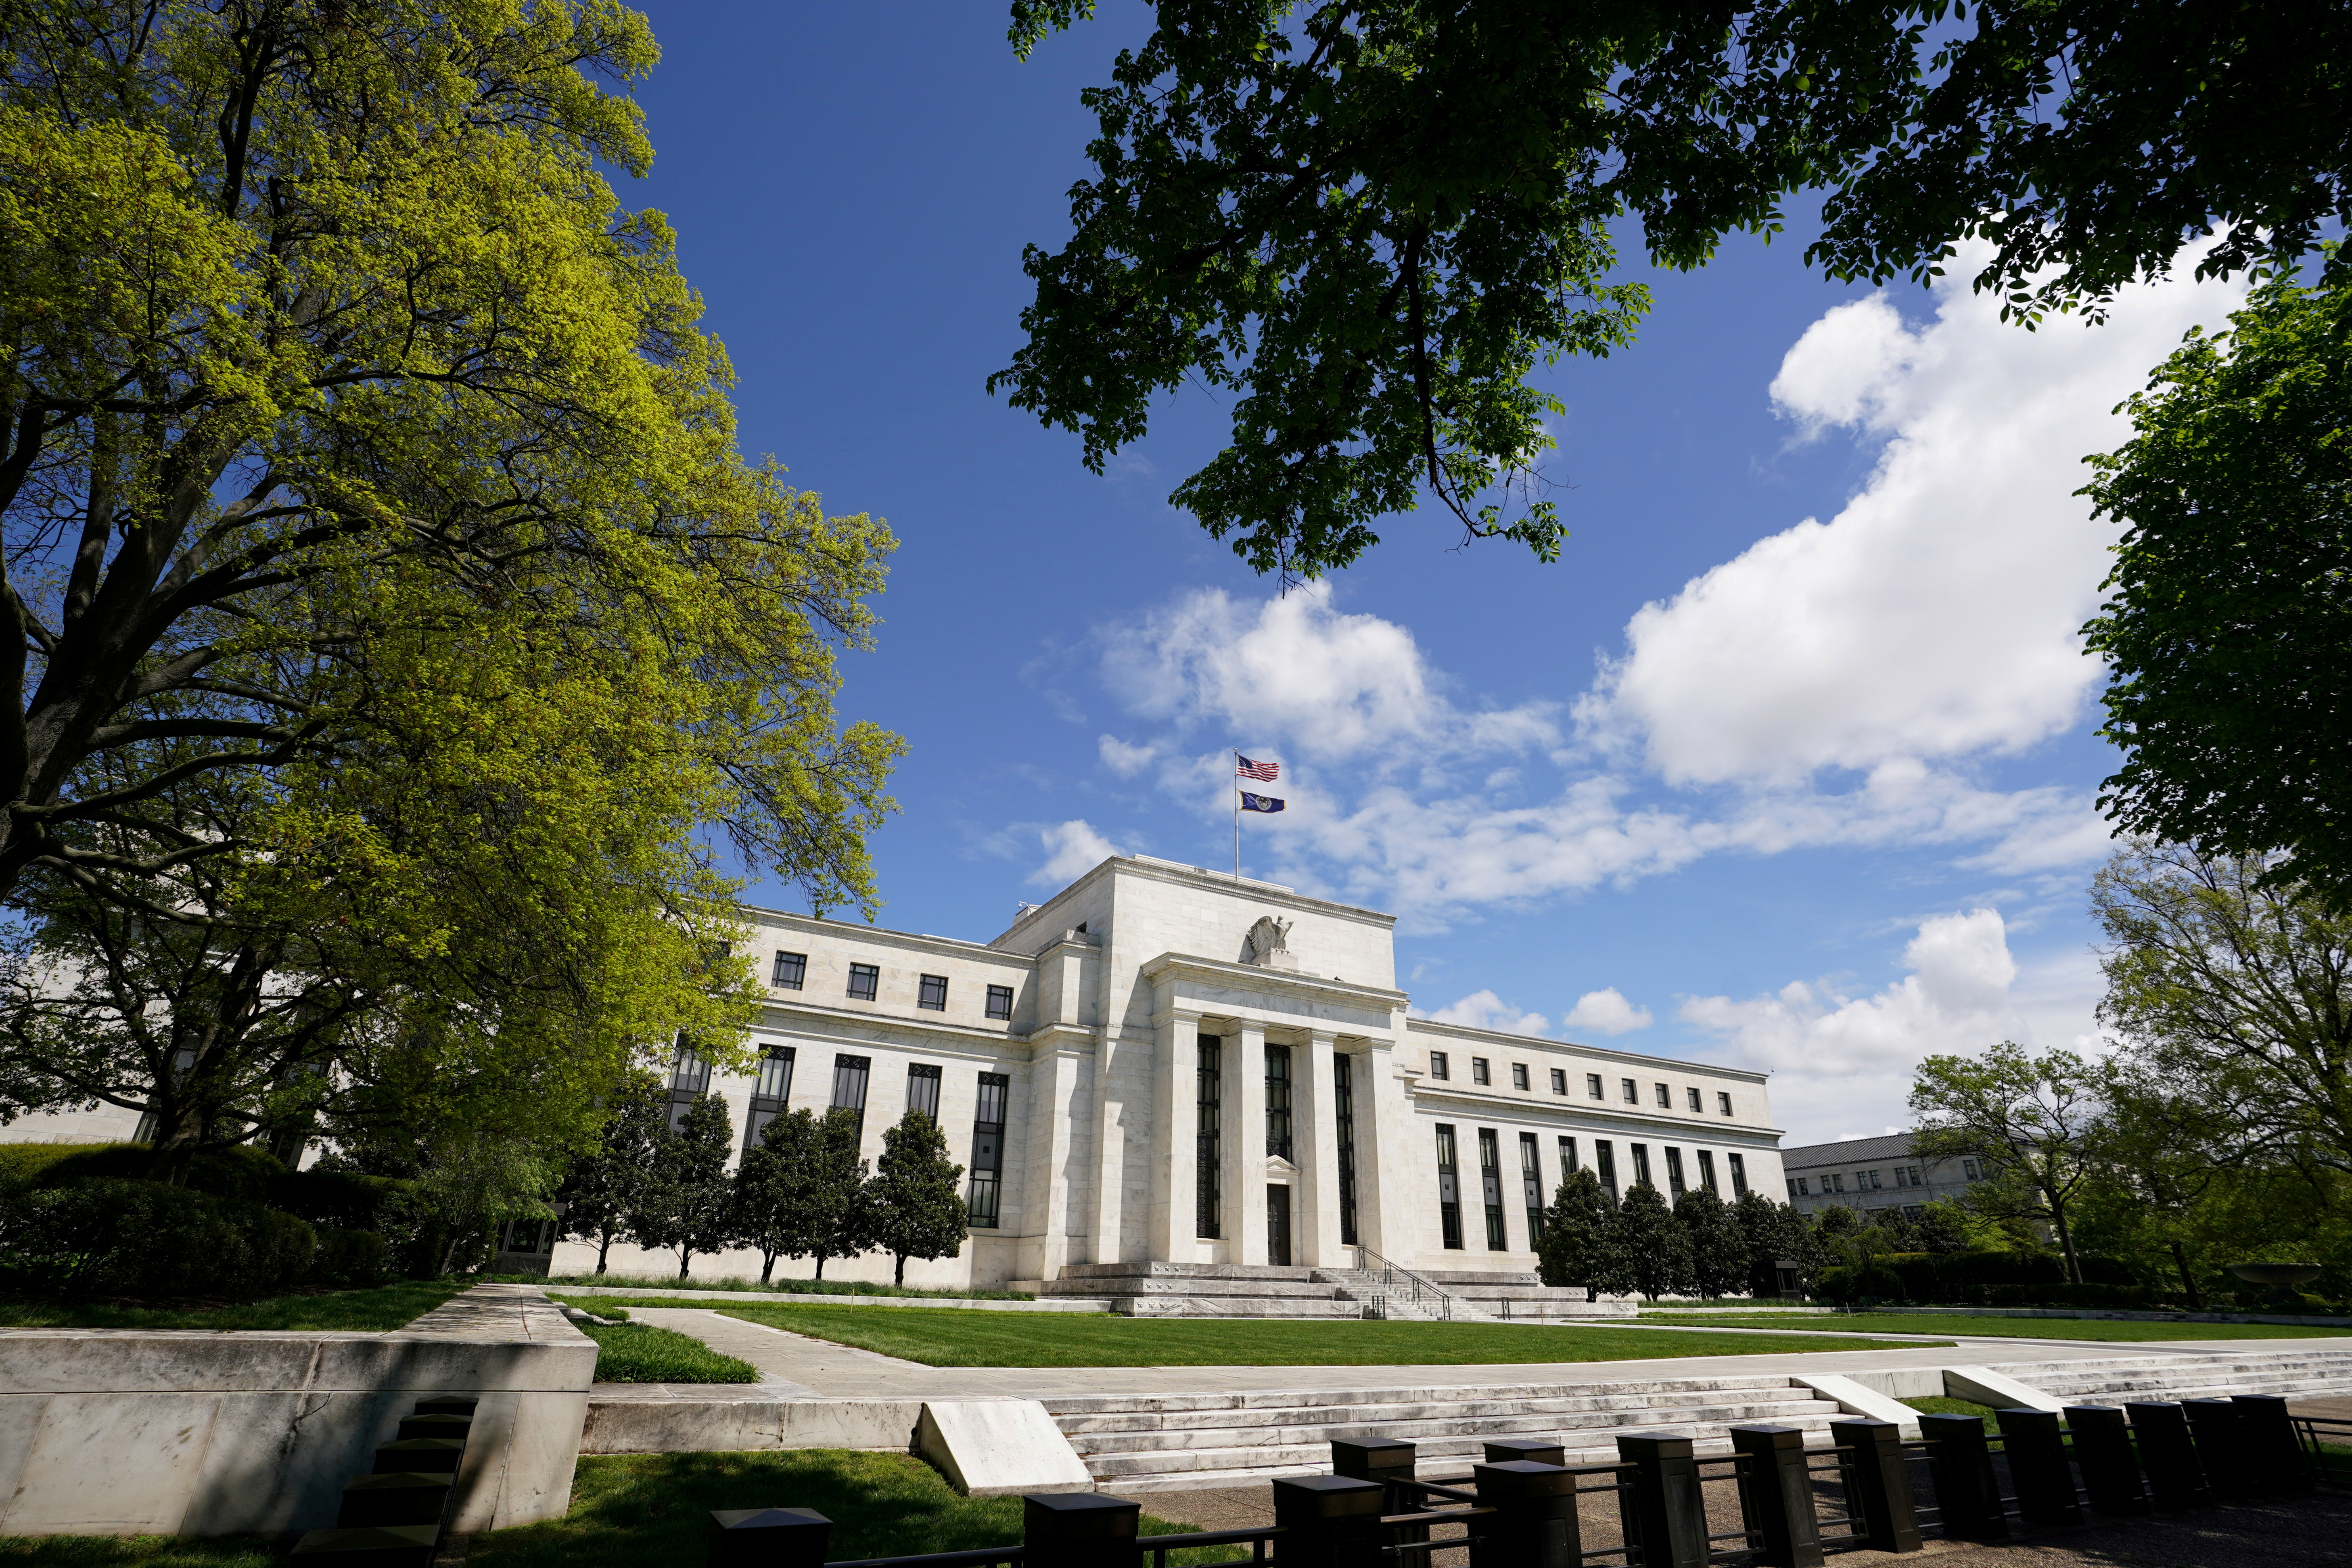 The Federal Reserve building is set against a blue sky in Washington, U.S., May 1, 2020. REUTERS/Kevin Lamarque